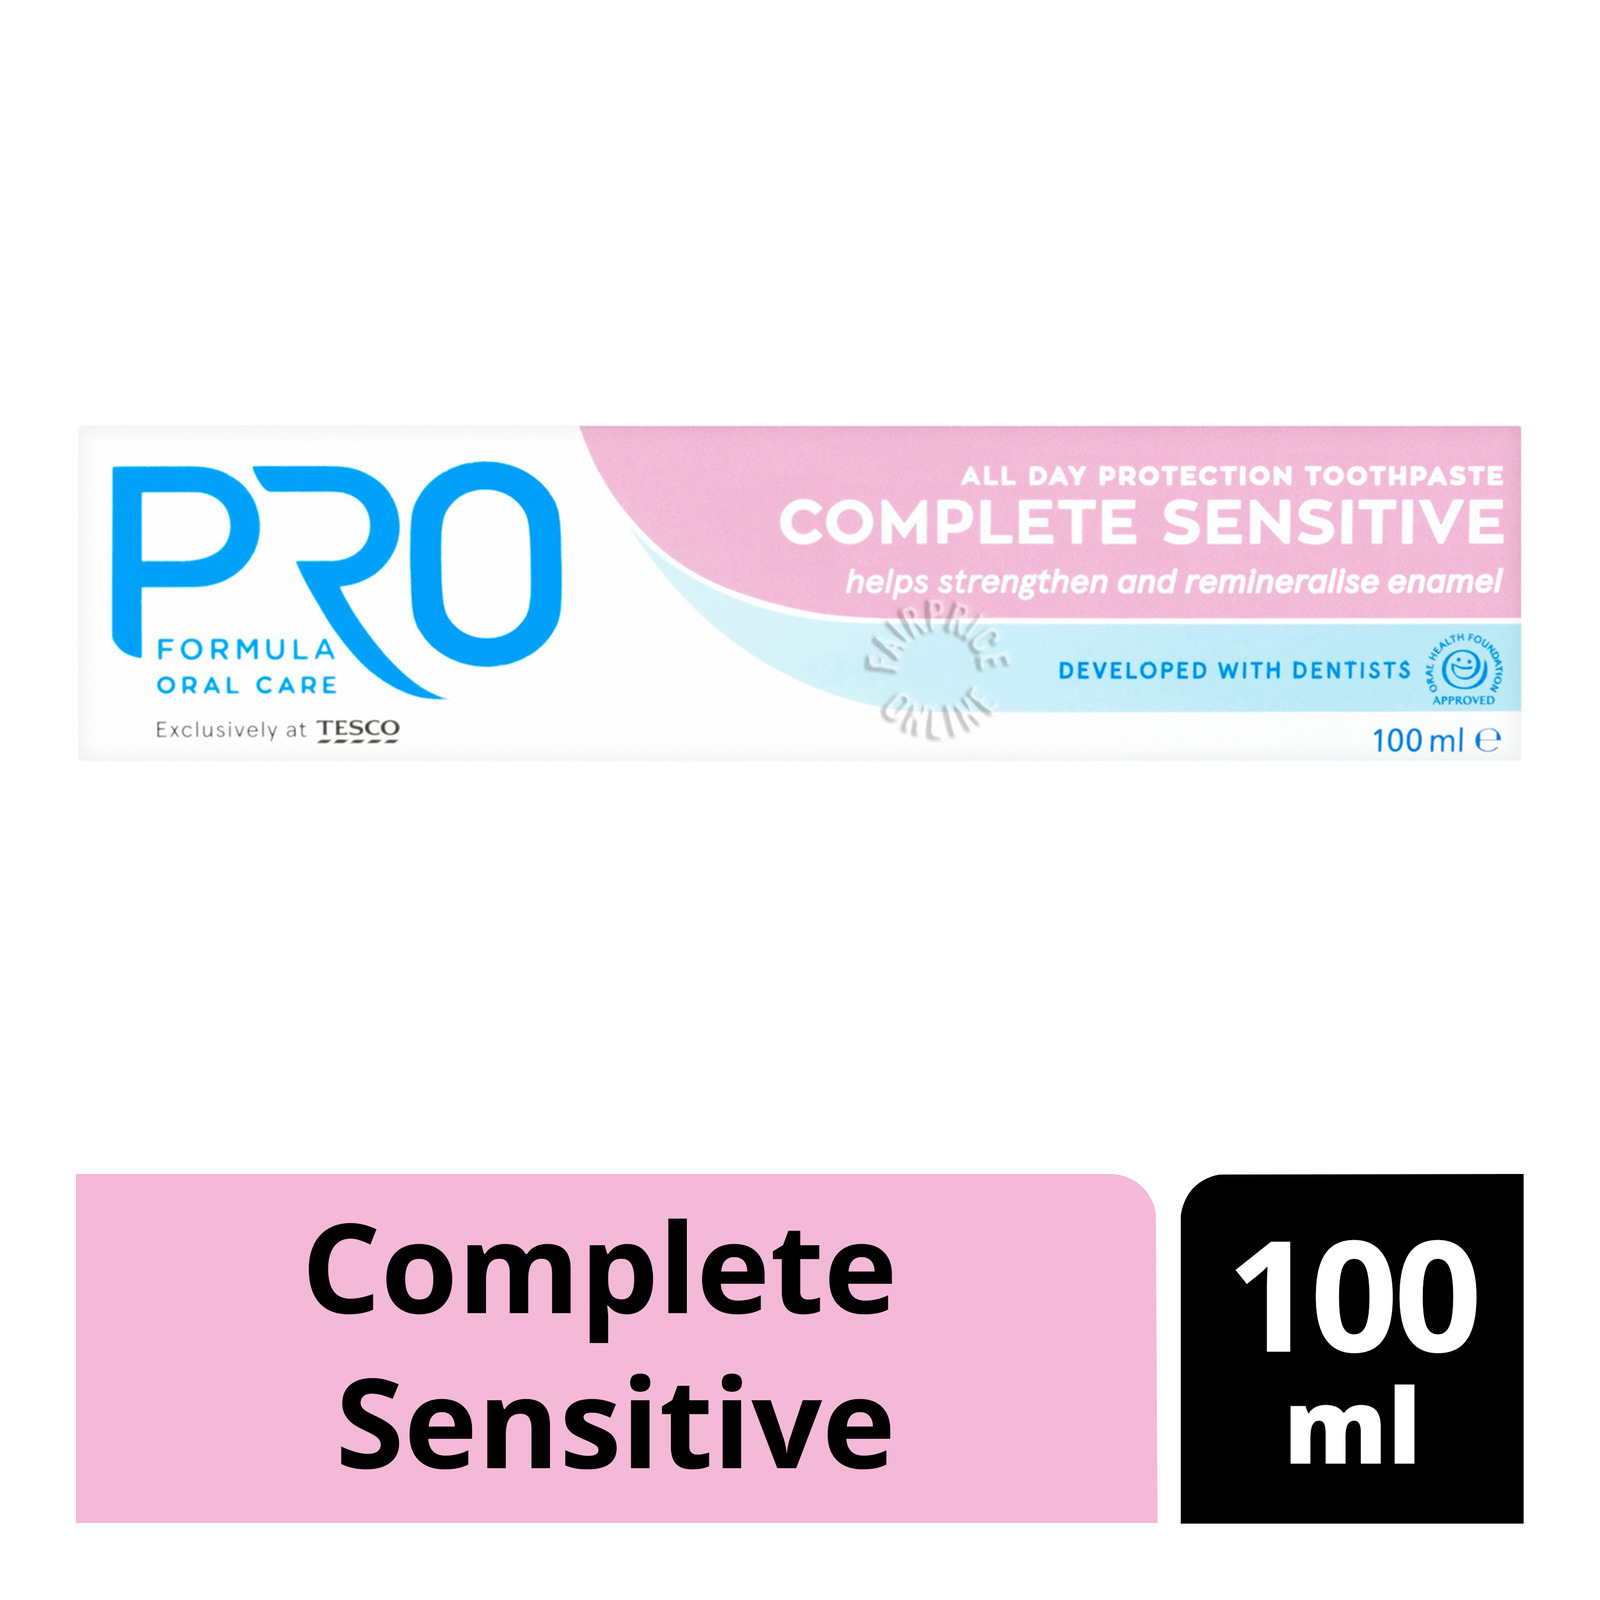 Tesco Pro All Day Protection Toothpaste - Complete Sensitive